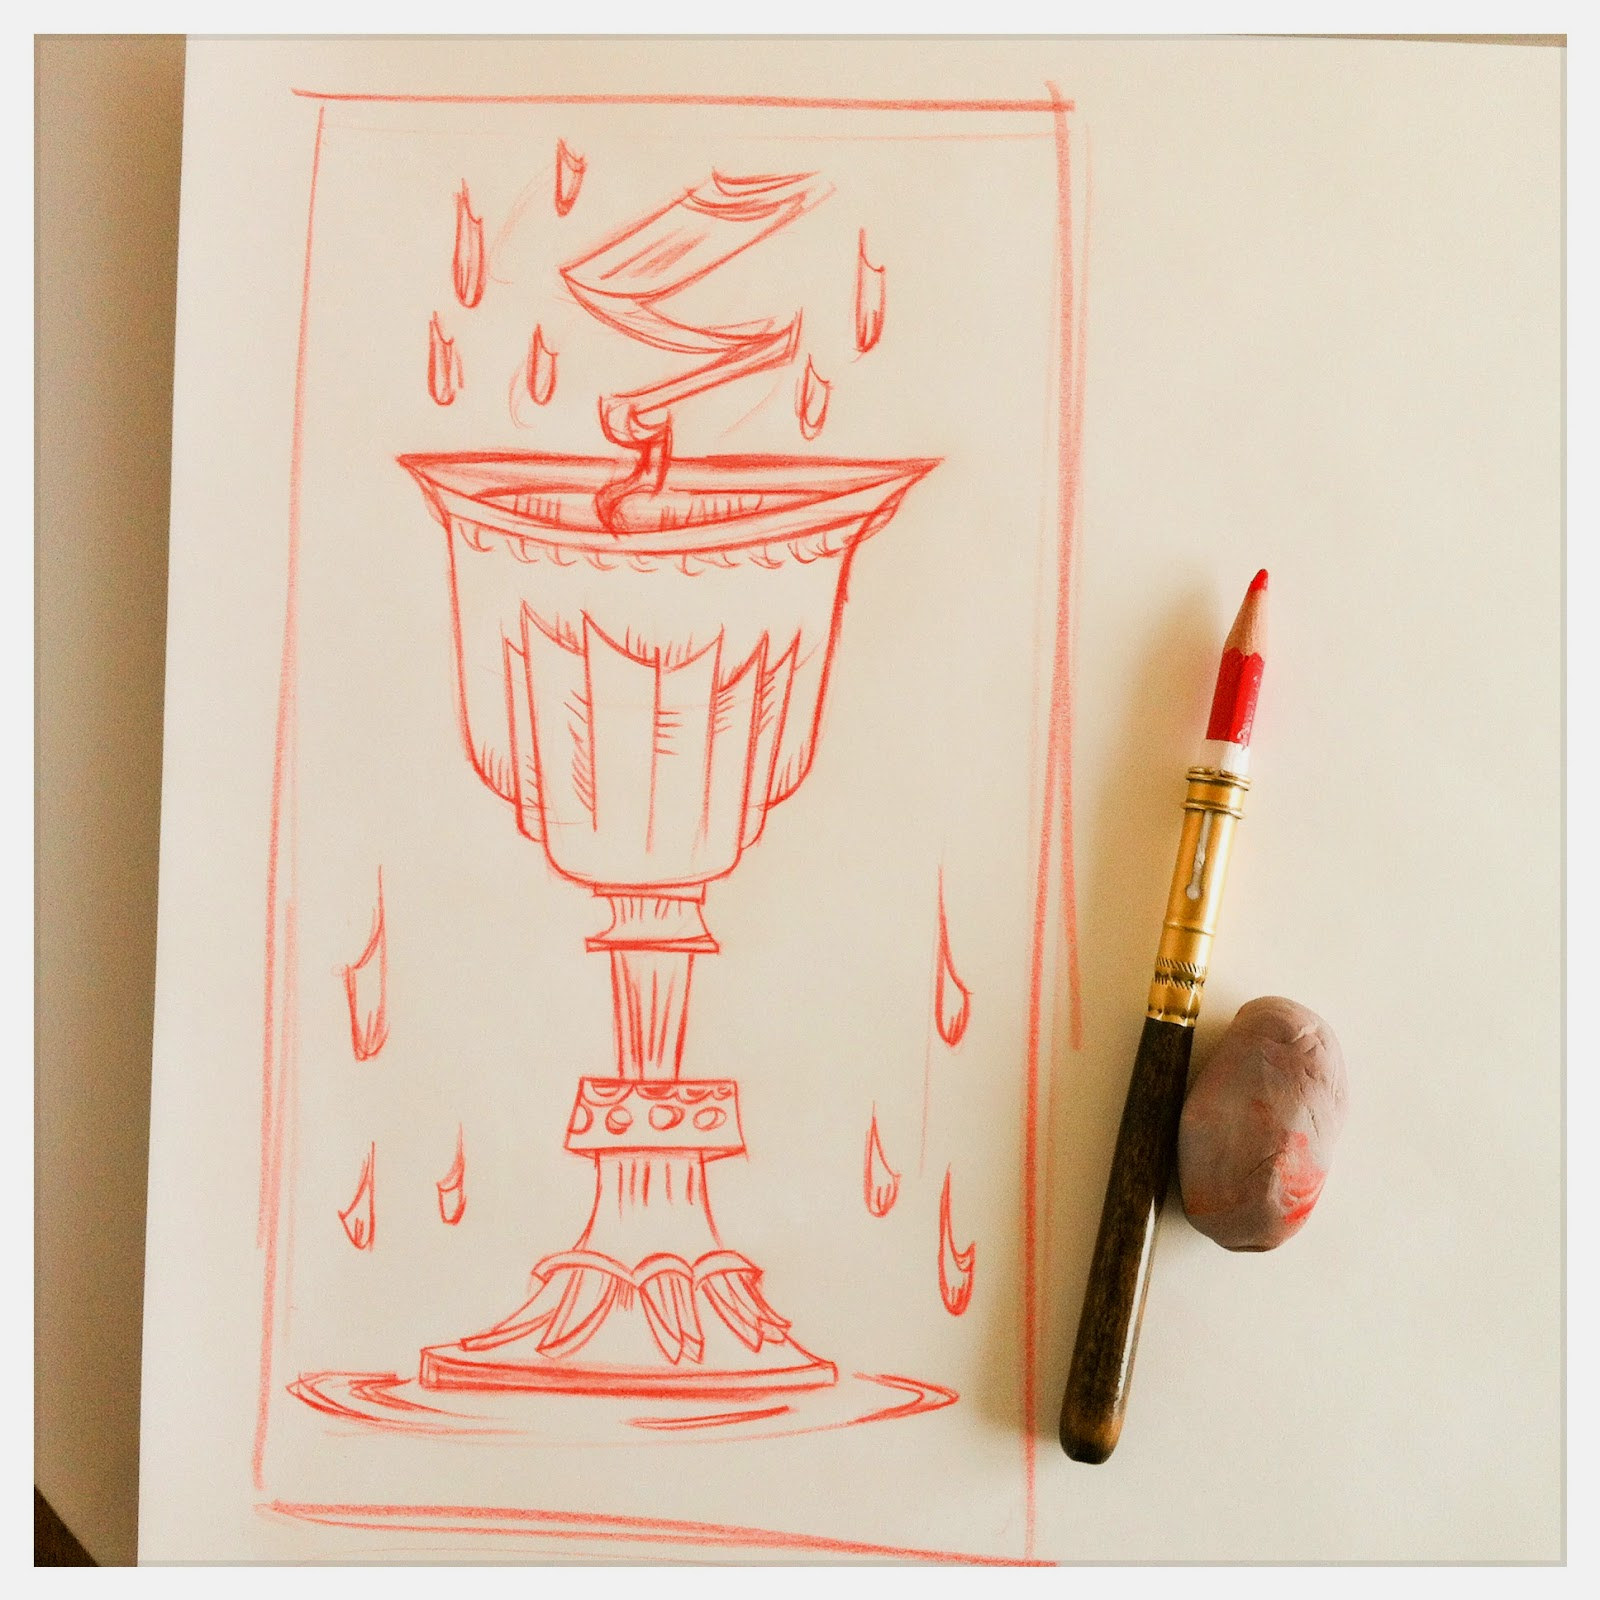 Design for: The Ace of Chalices Tarot card -In the spirit of the tarot Marseille - red pencil sketch by Cesare Asaro - Curio & Co. (Curio and Co. OG - www.curioandco.com)